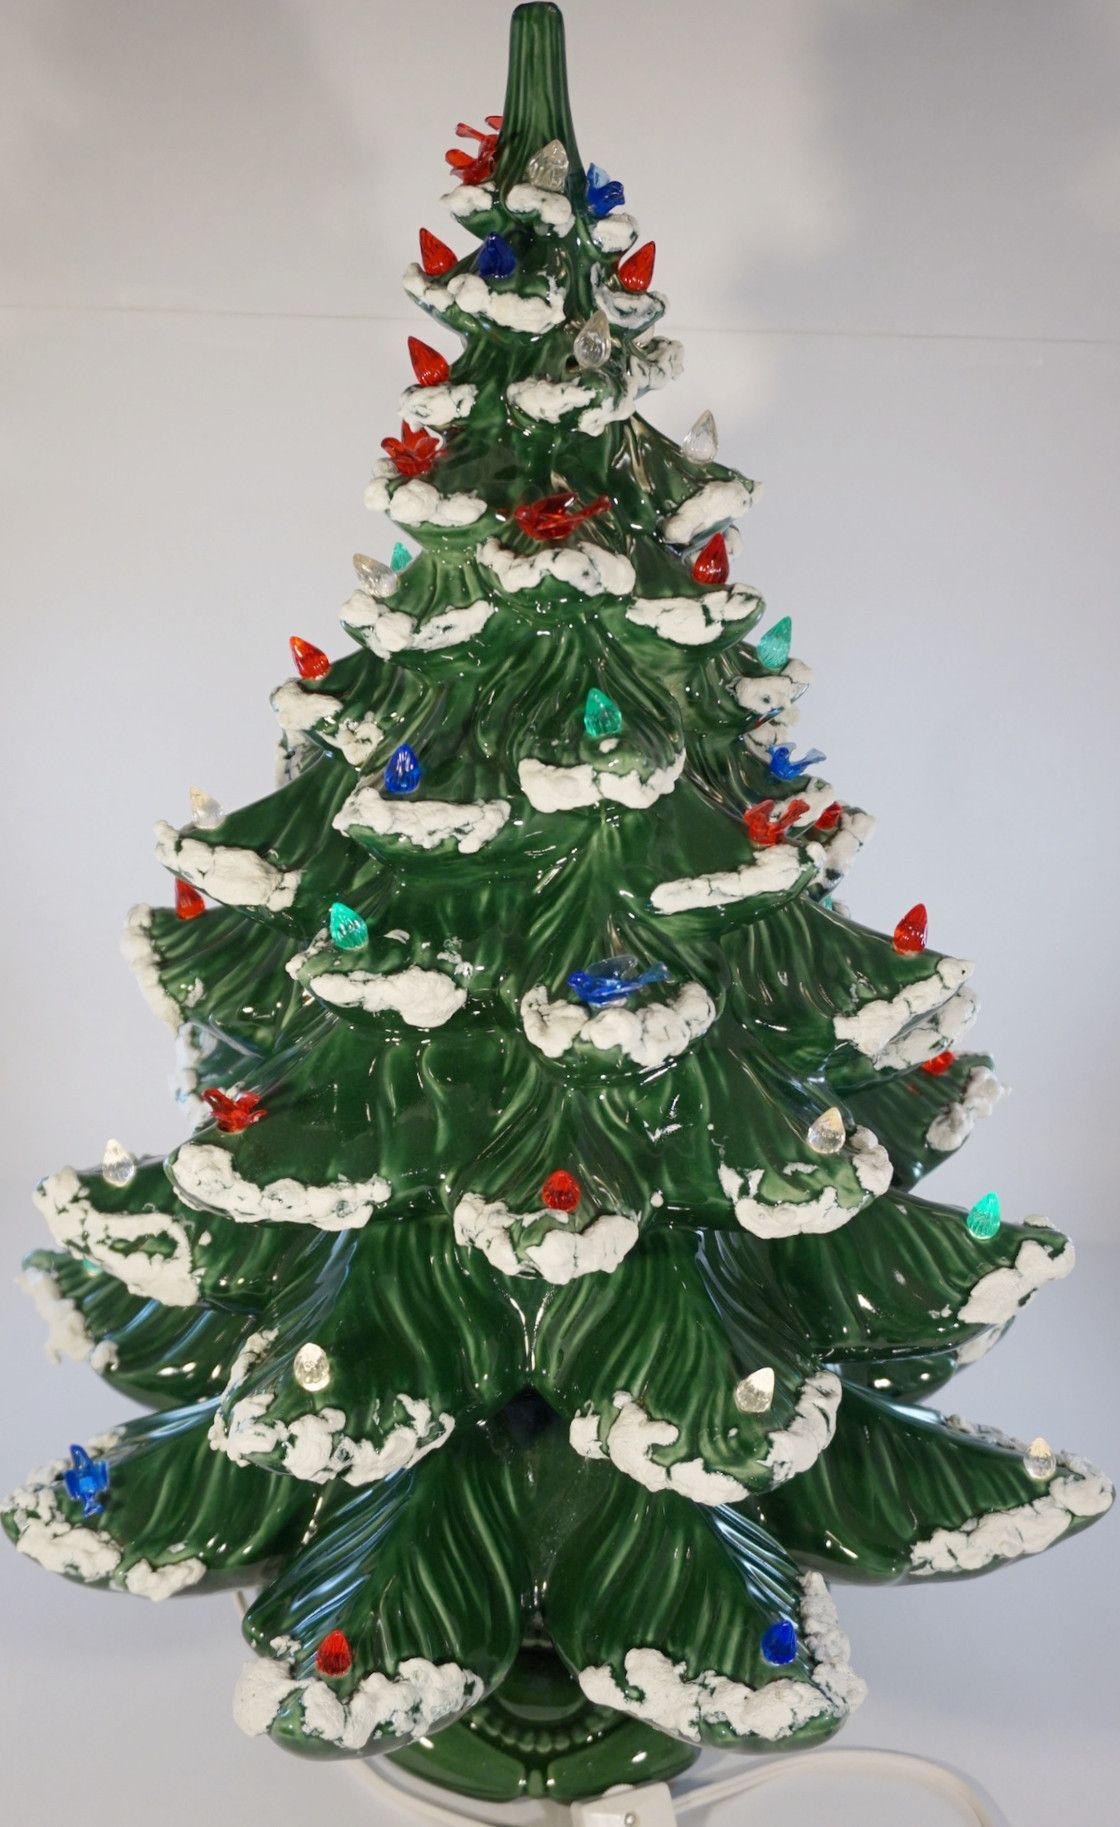 large ceramic christmas tree we have one similar to this that is at least 40 years old some of the decorations have dissapeared my mother has a hard time